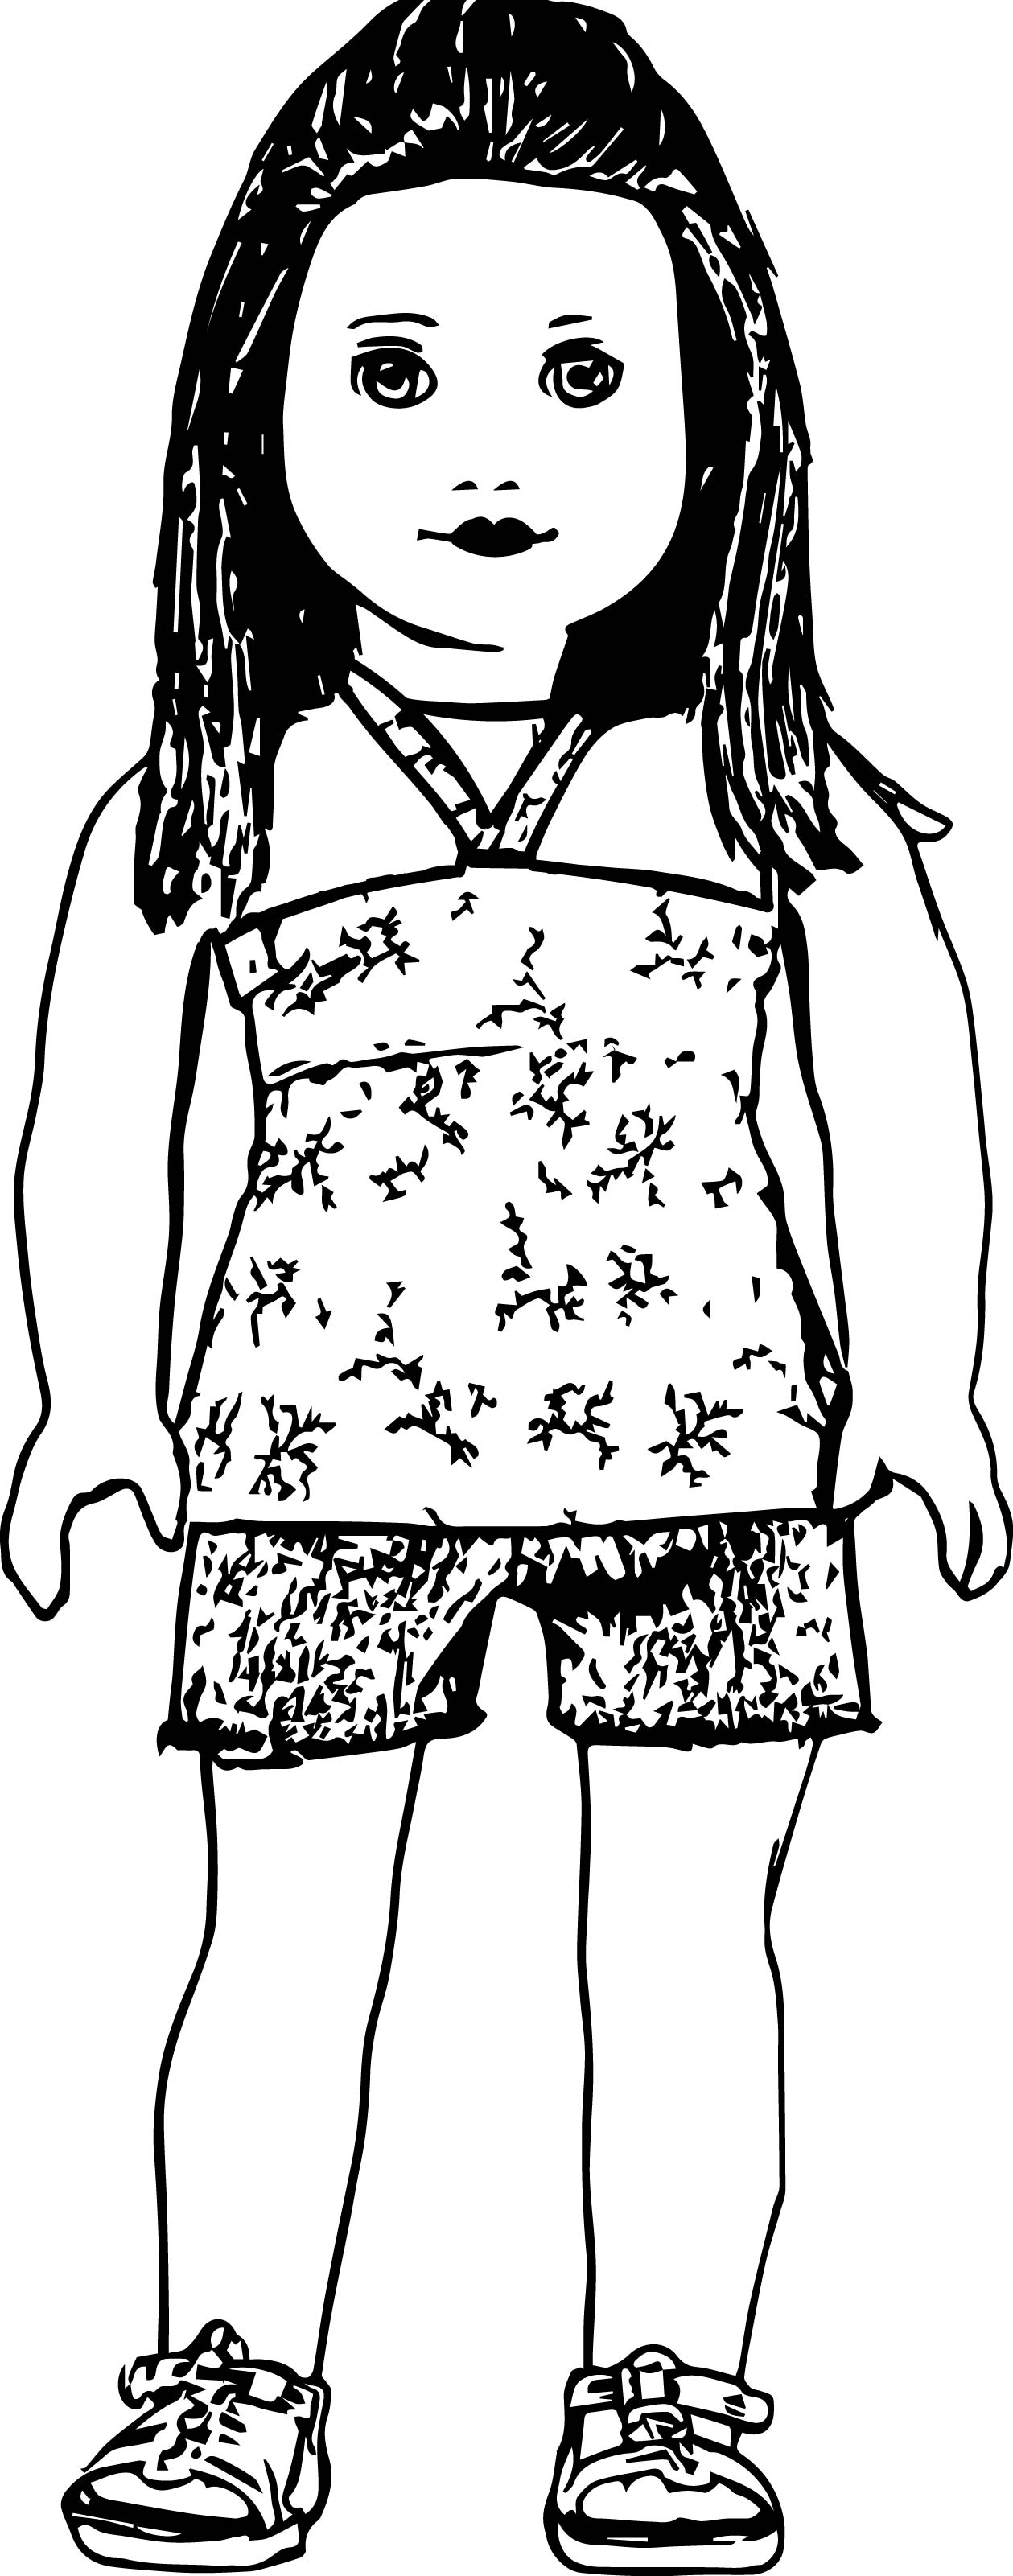 american girl doll coloring pages to print american girl doll coloring pages with images kolorowanki pages print coloring doll american girl to